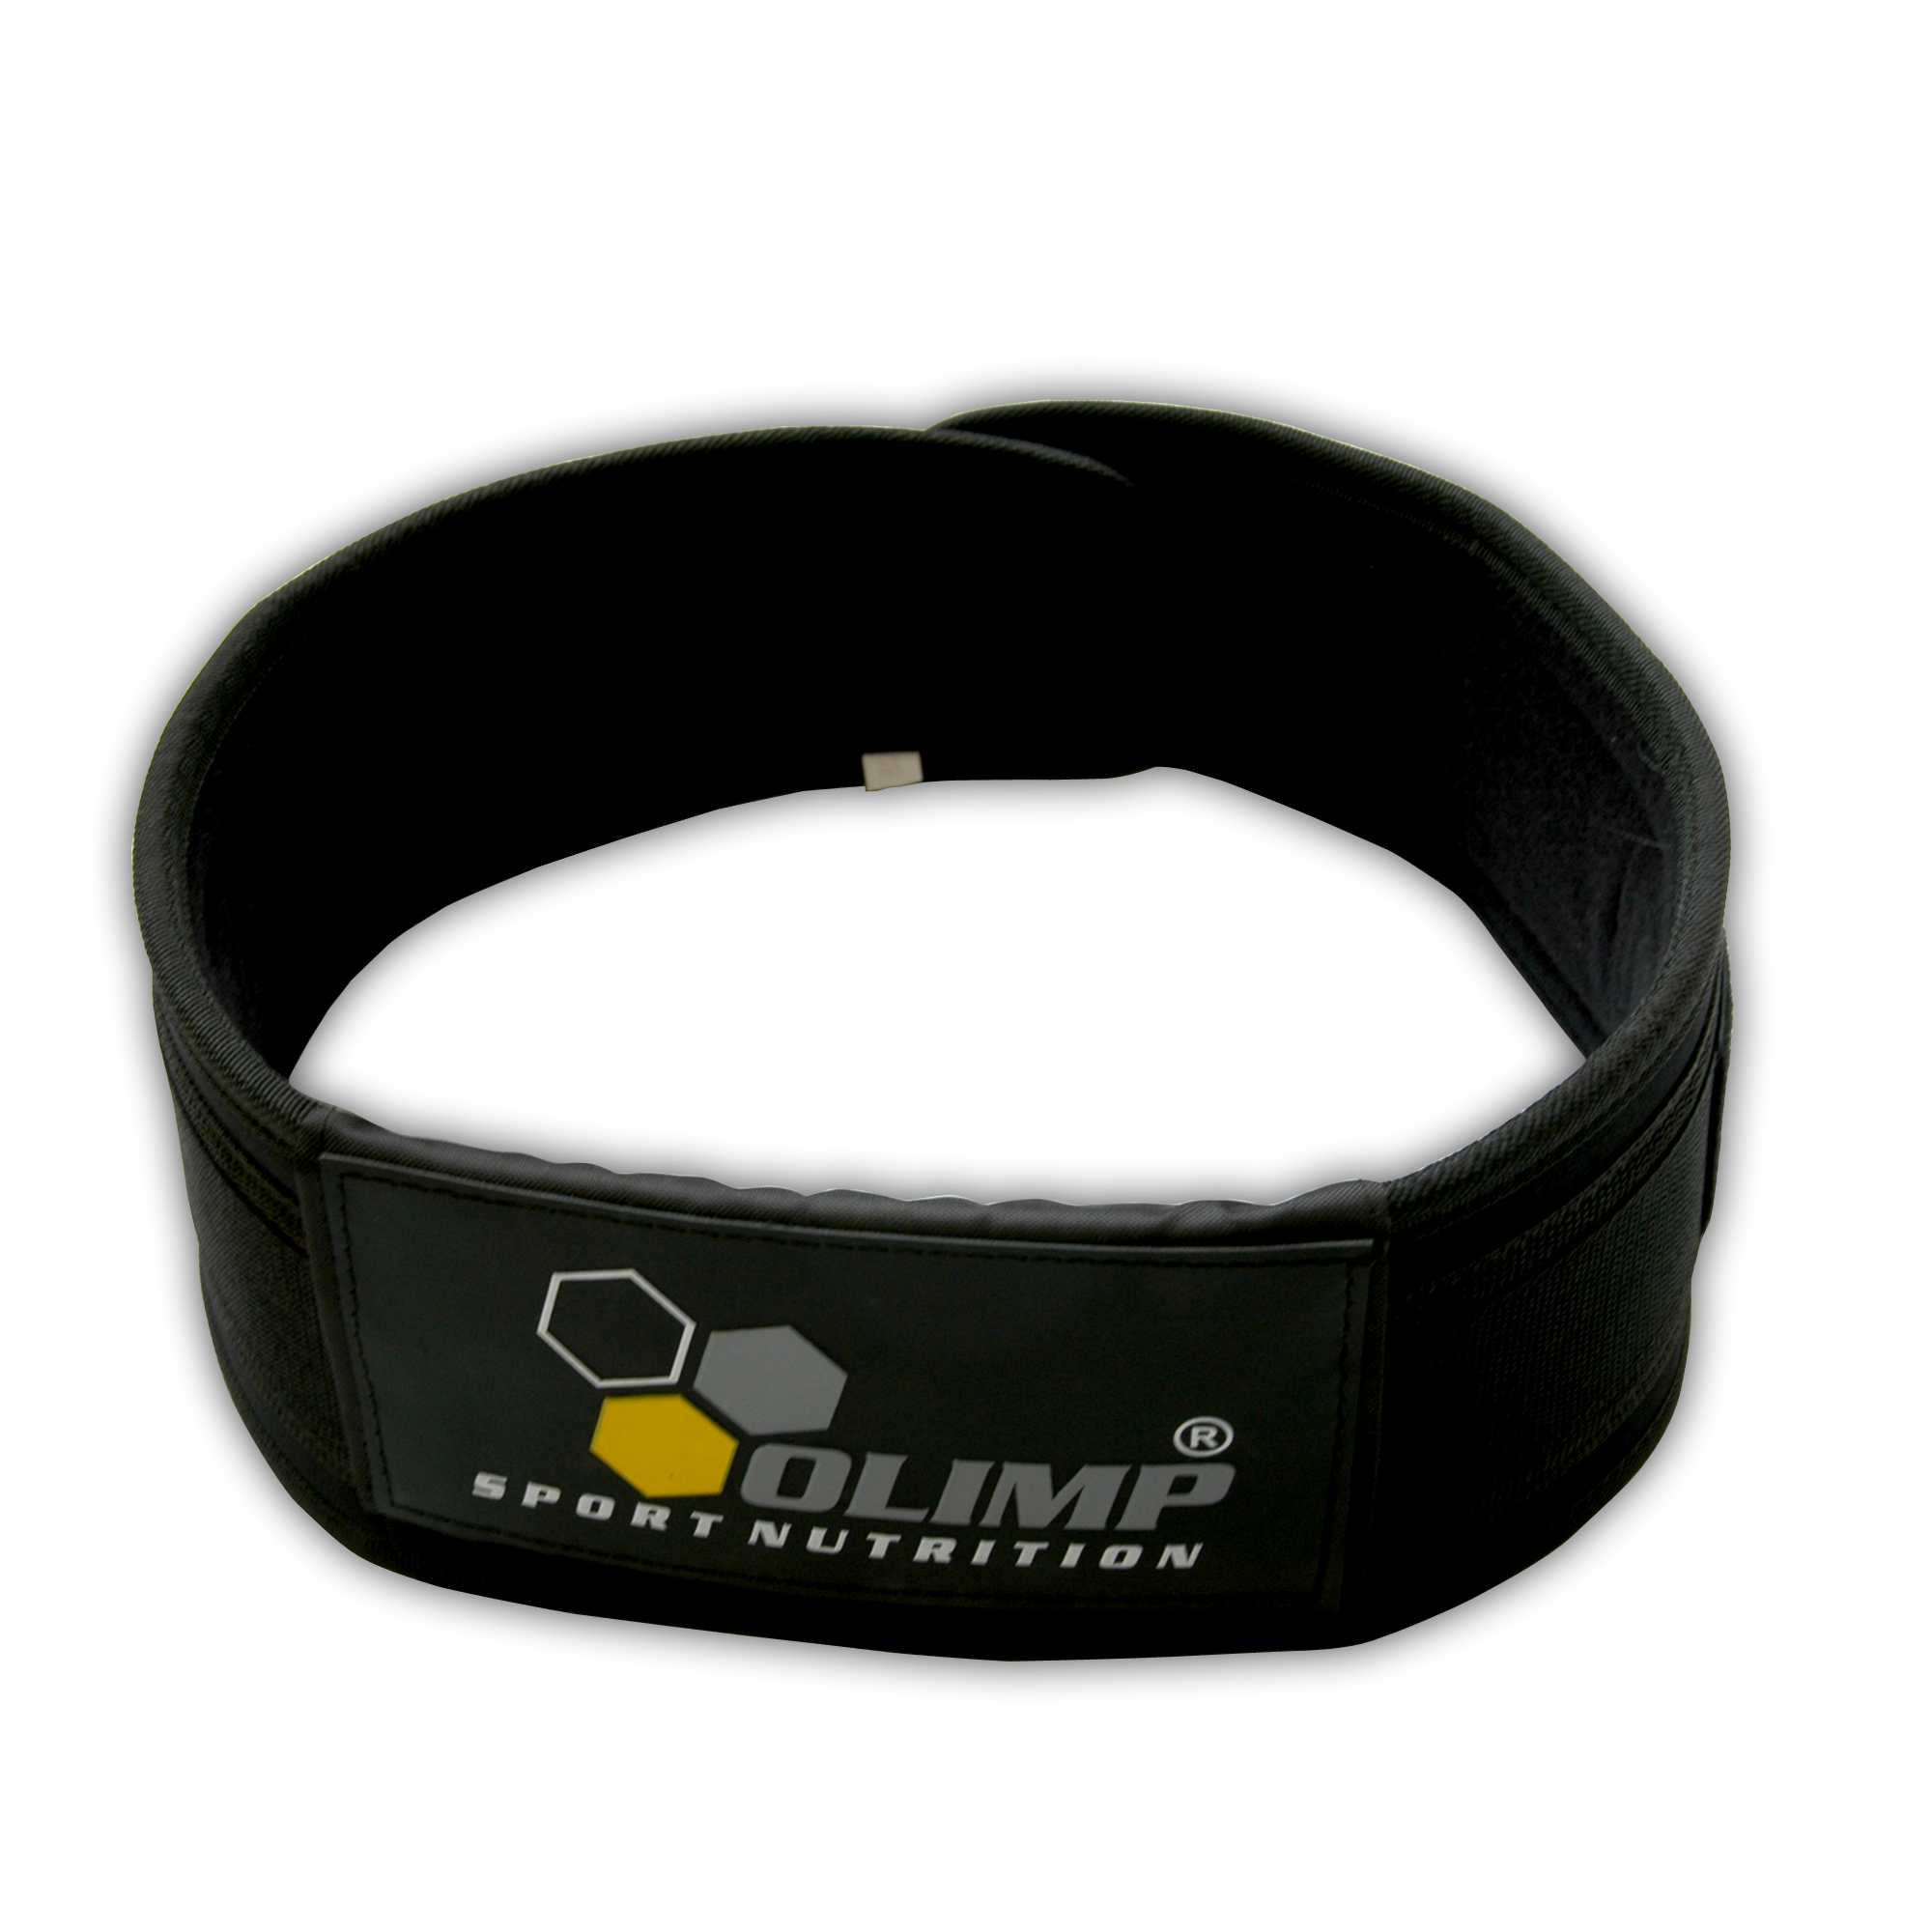 Olimp Sport Nutrition Training Hardcore Professional Belt